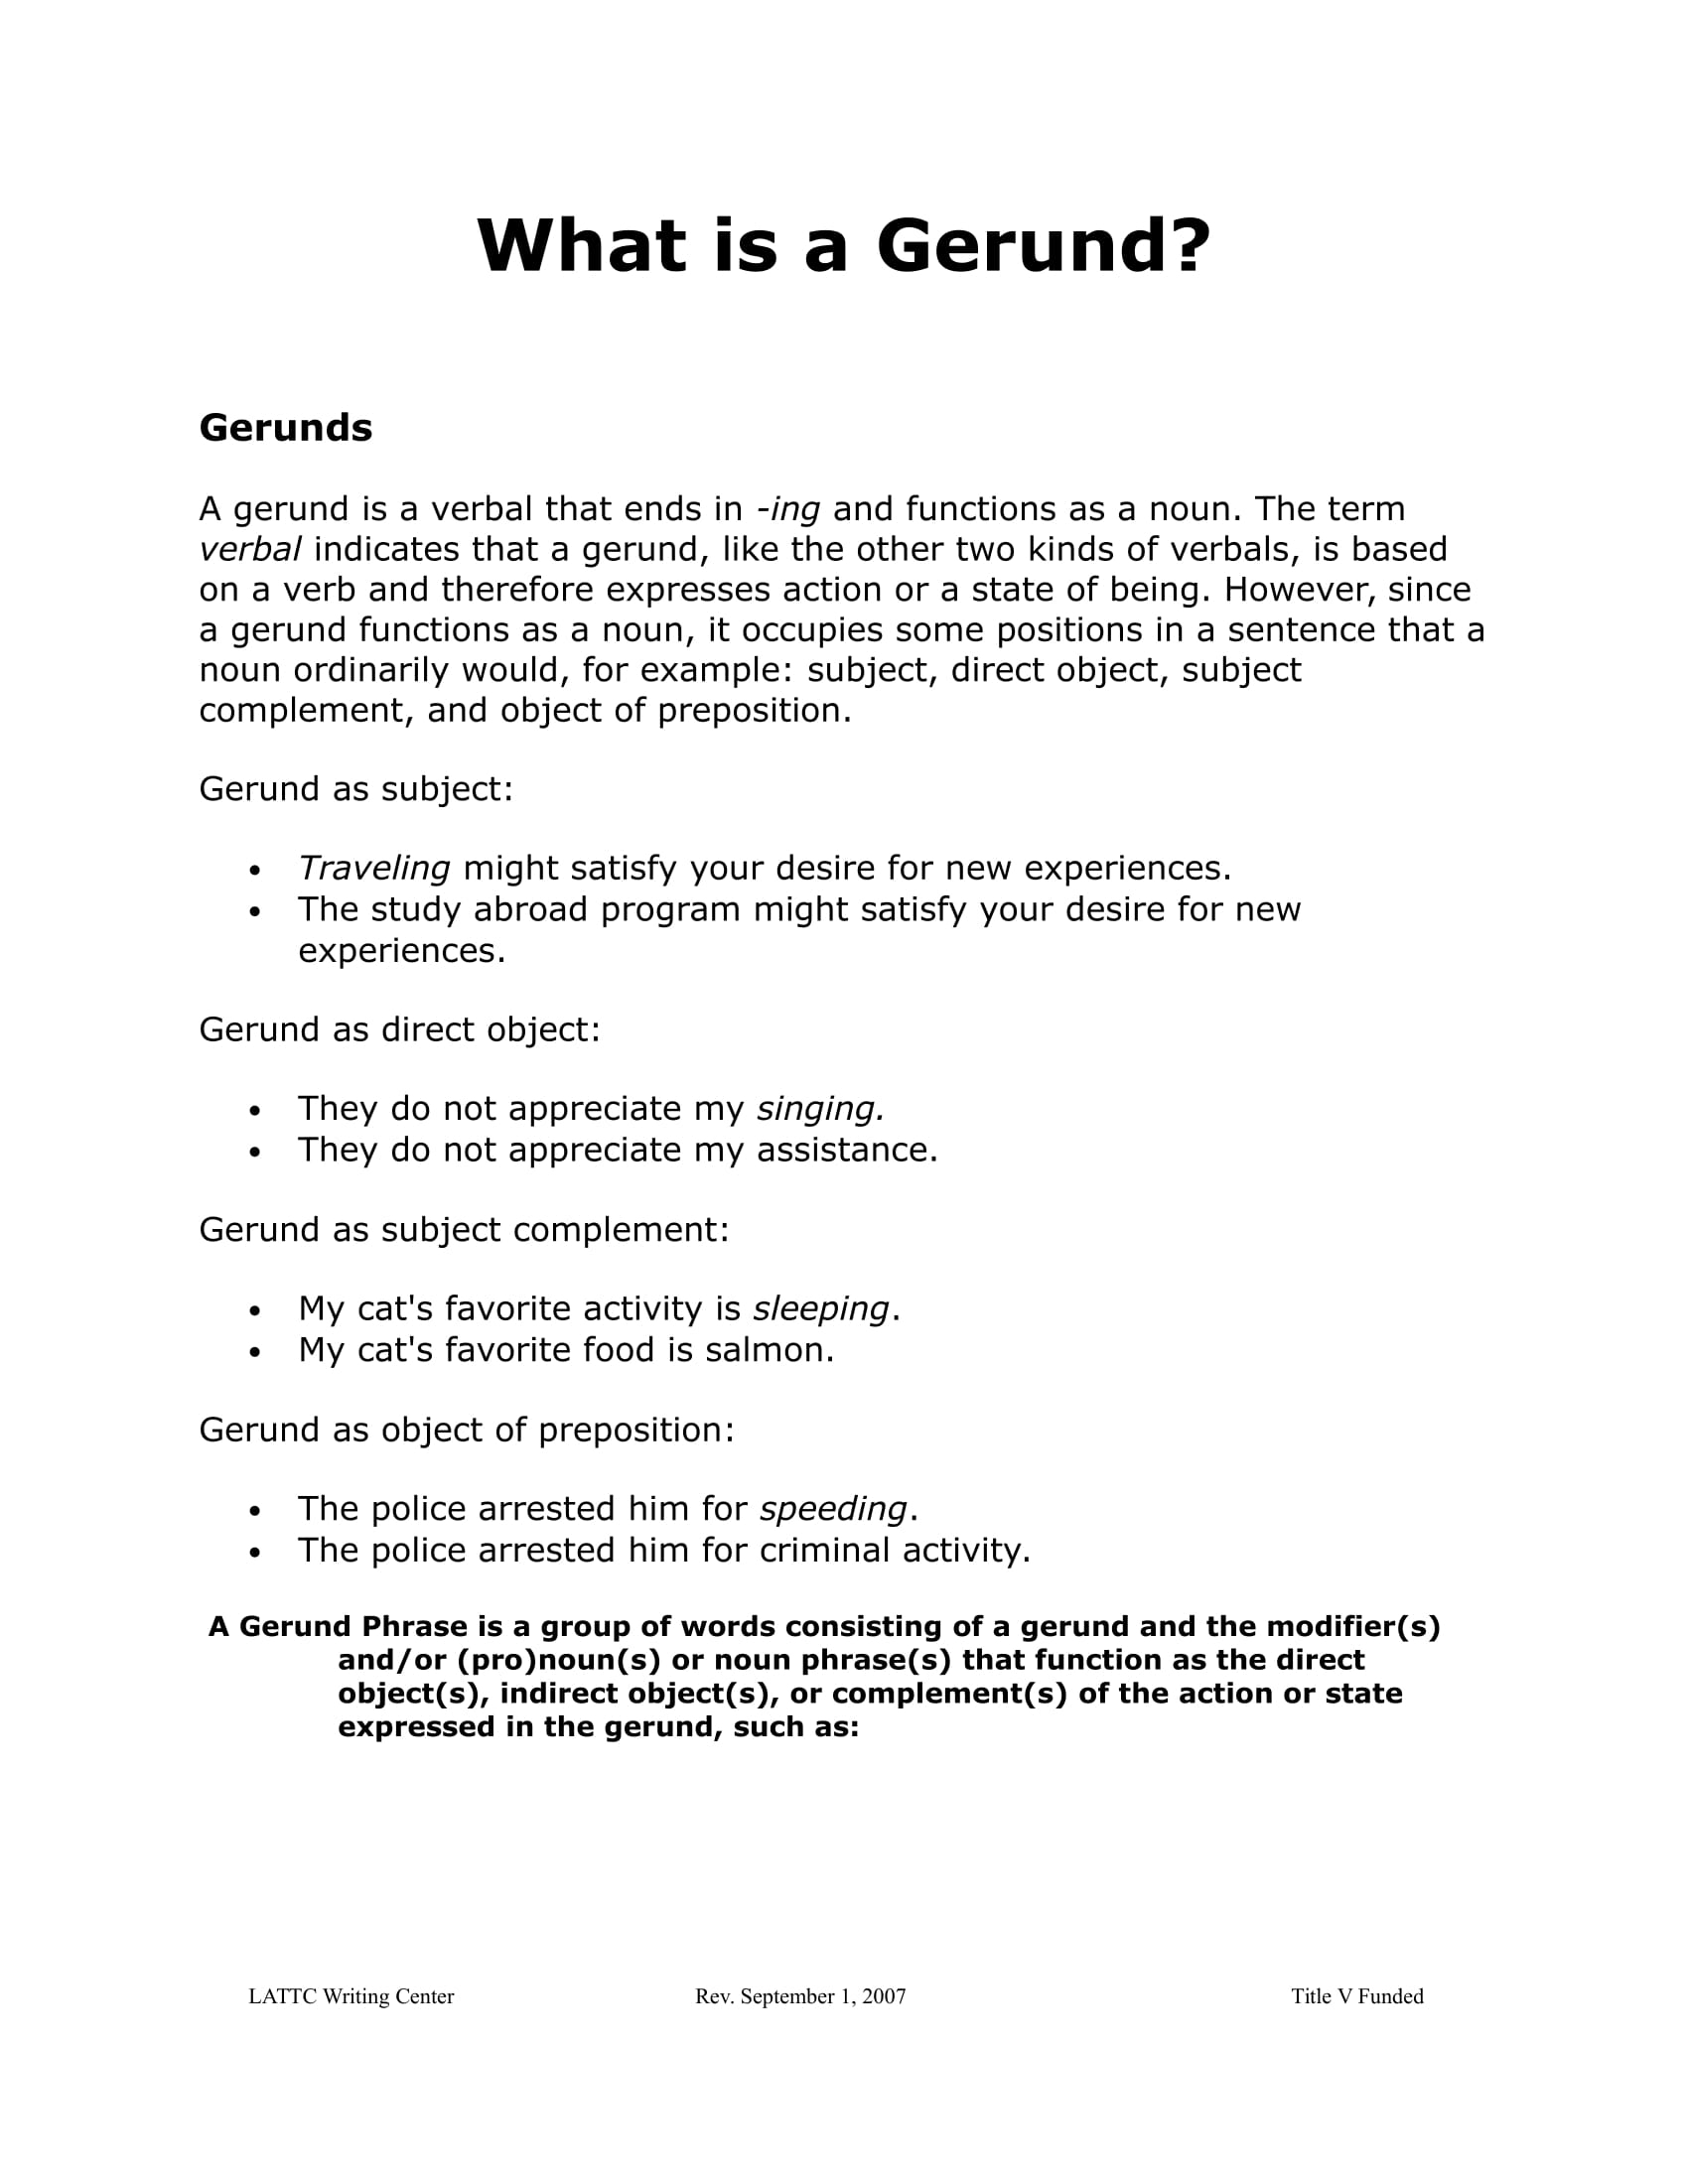 gerund study sheet example